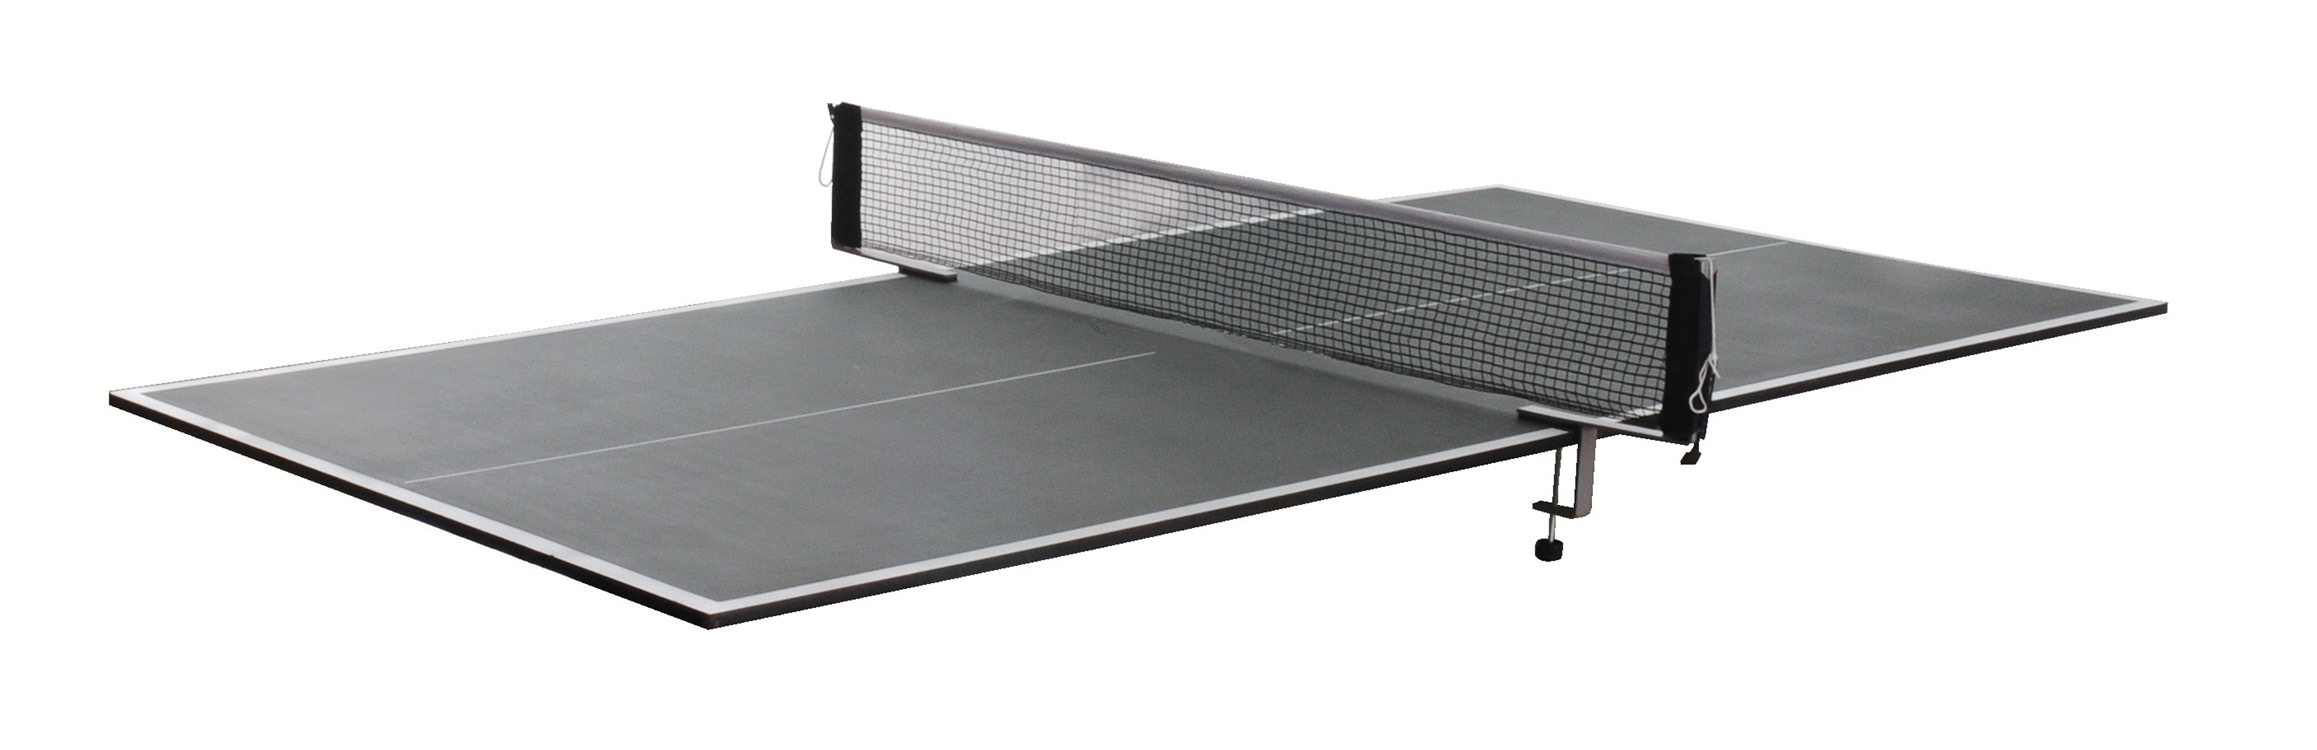 butterfly 6ft x 3ft table tennis table top